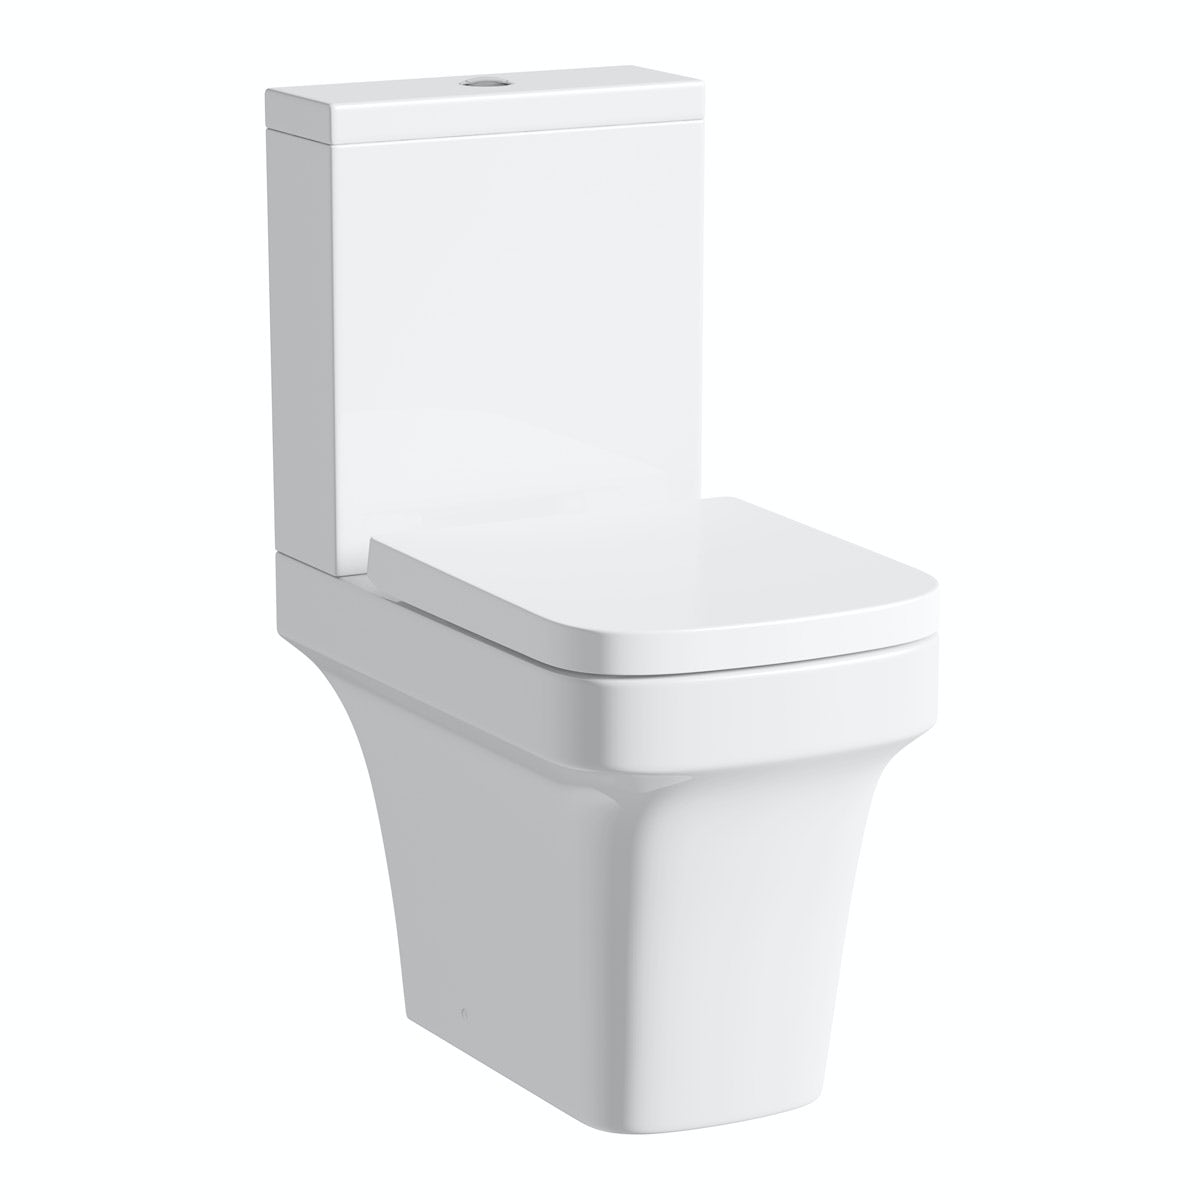 Mode Carter close coupled toilet with soft close seat